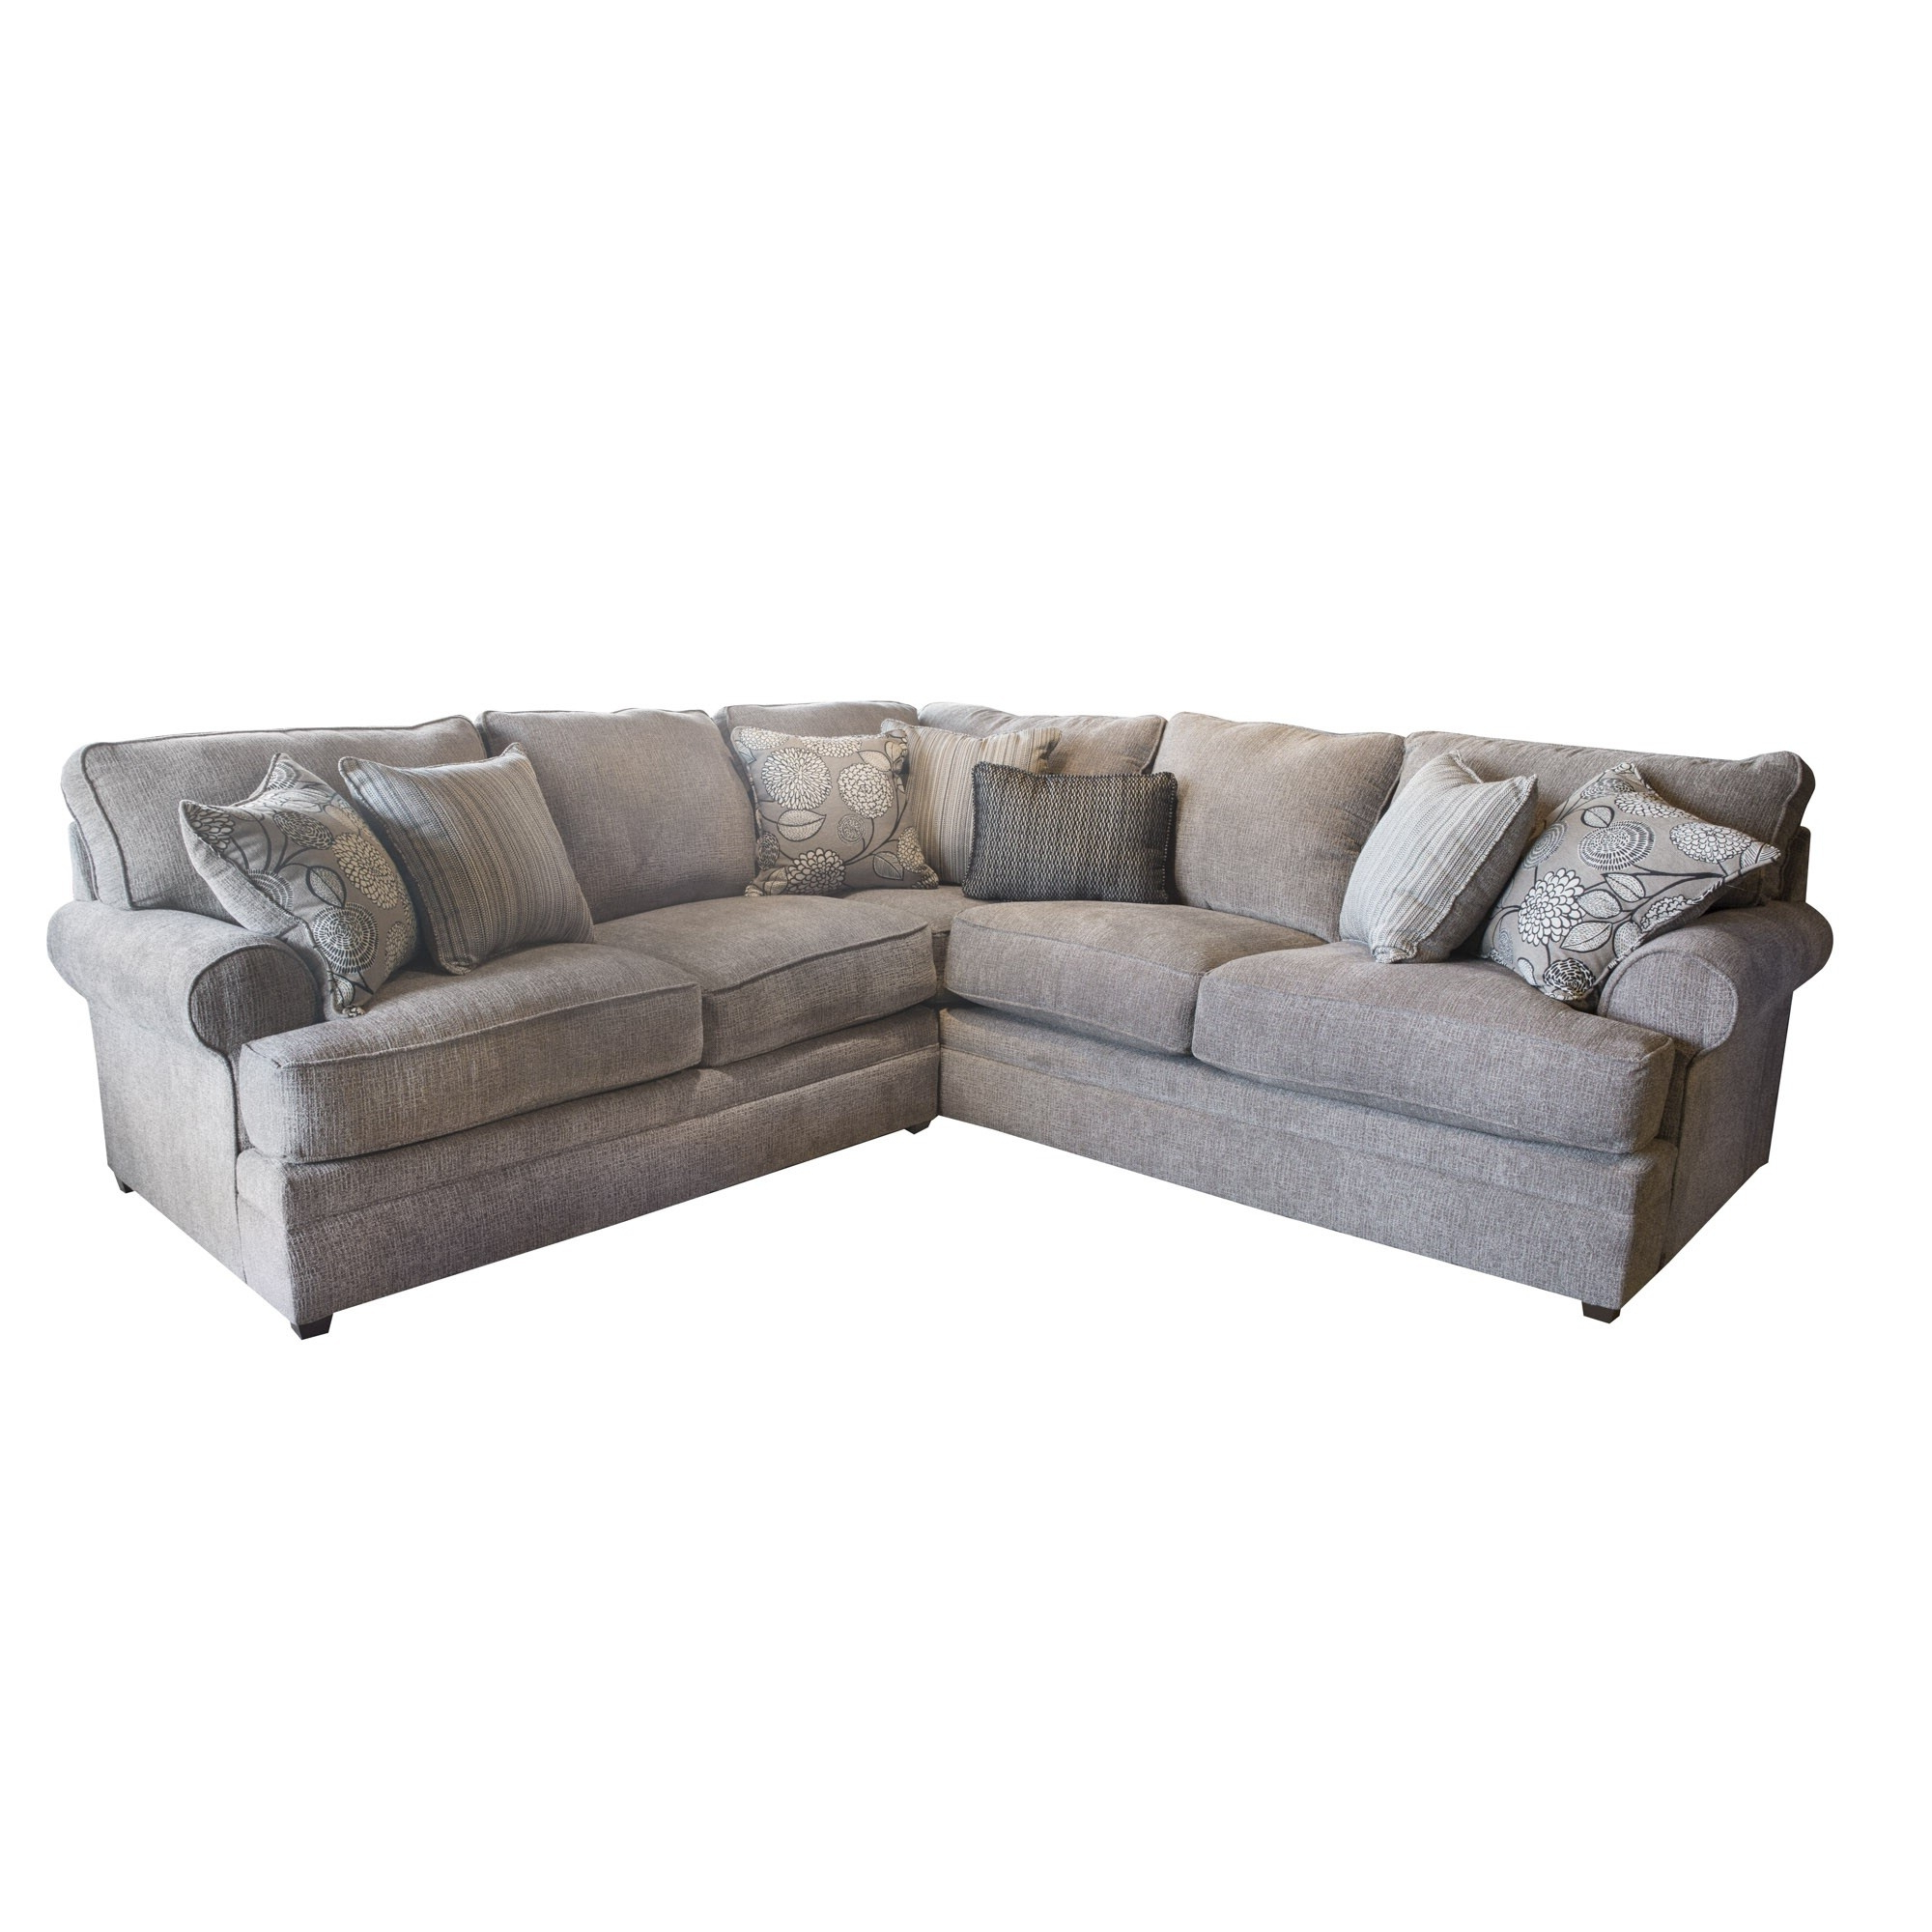 Most Recent Travis Cognac Leather 6 Piece Power Reclining Sectionals With Power Headrest & Usb Inside Harper Fabric 6 Piece Modular Sectional Sofa (View 18 of 20)